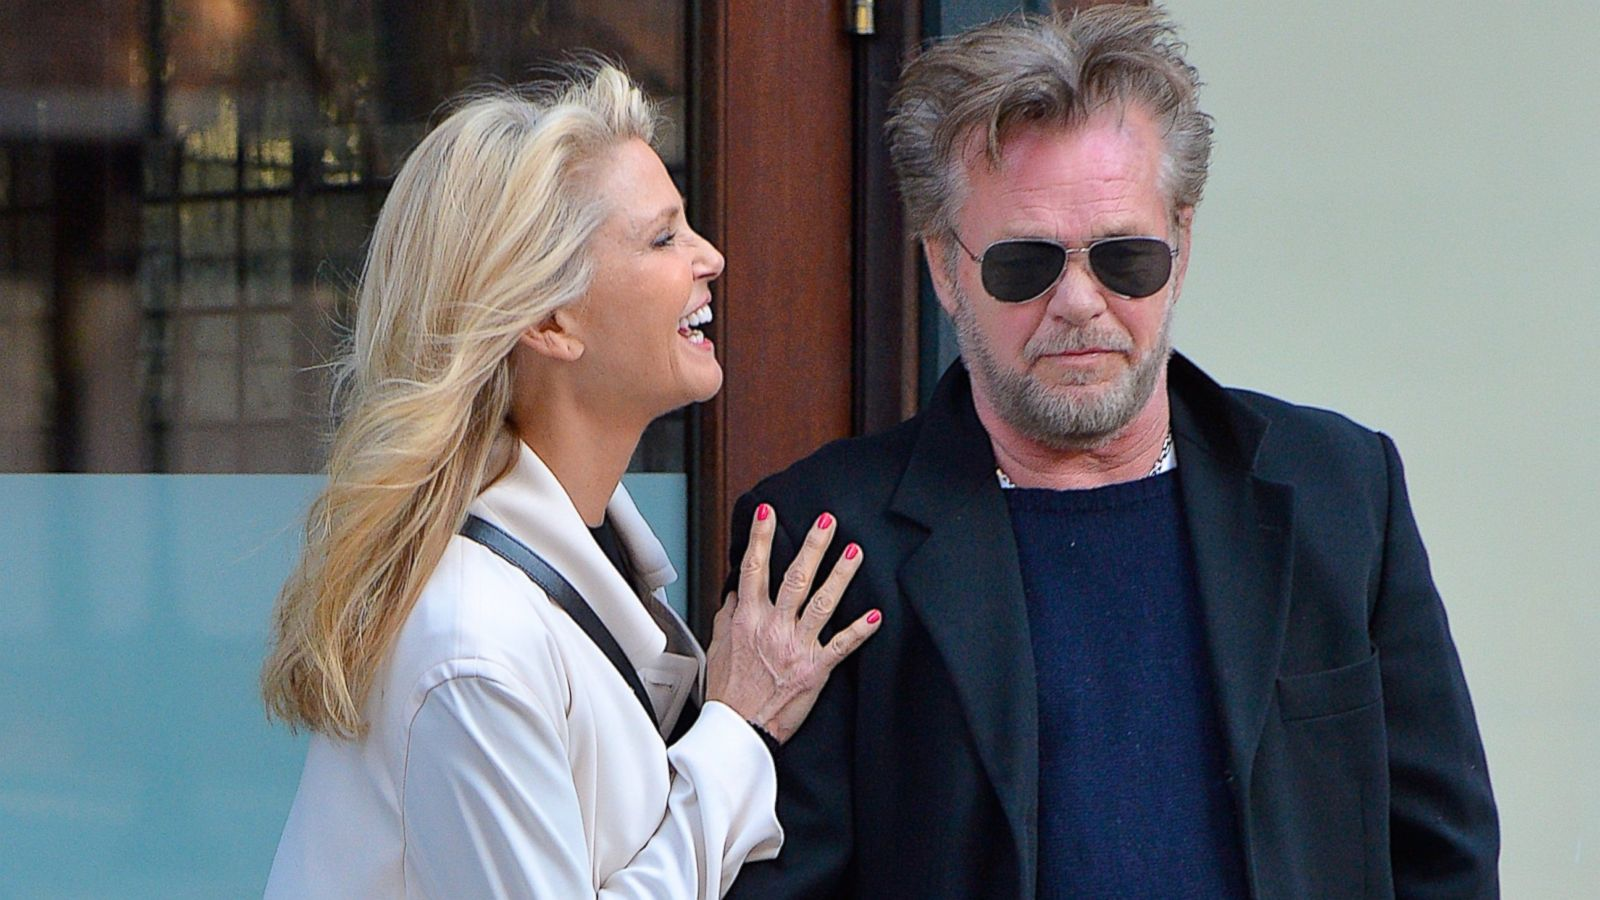 Christie Brinkley On What Attracted Her To John Mellencamp Abc News